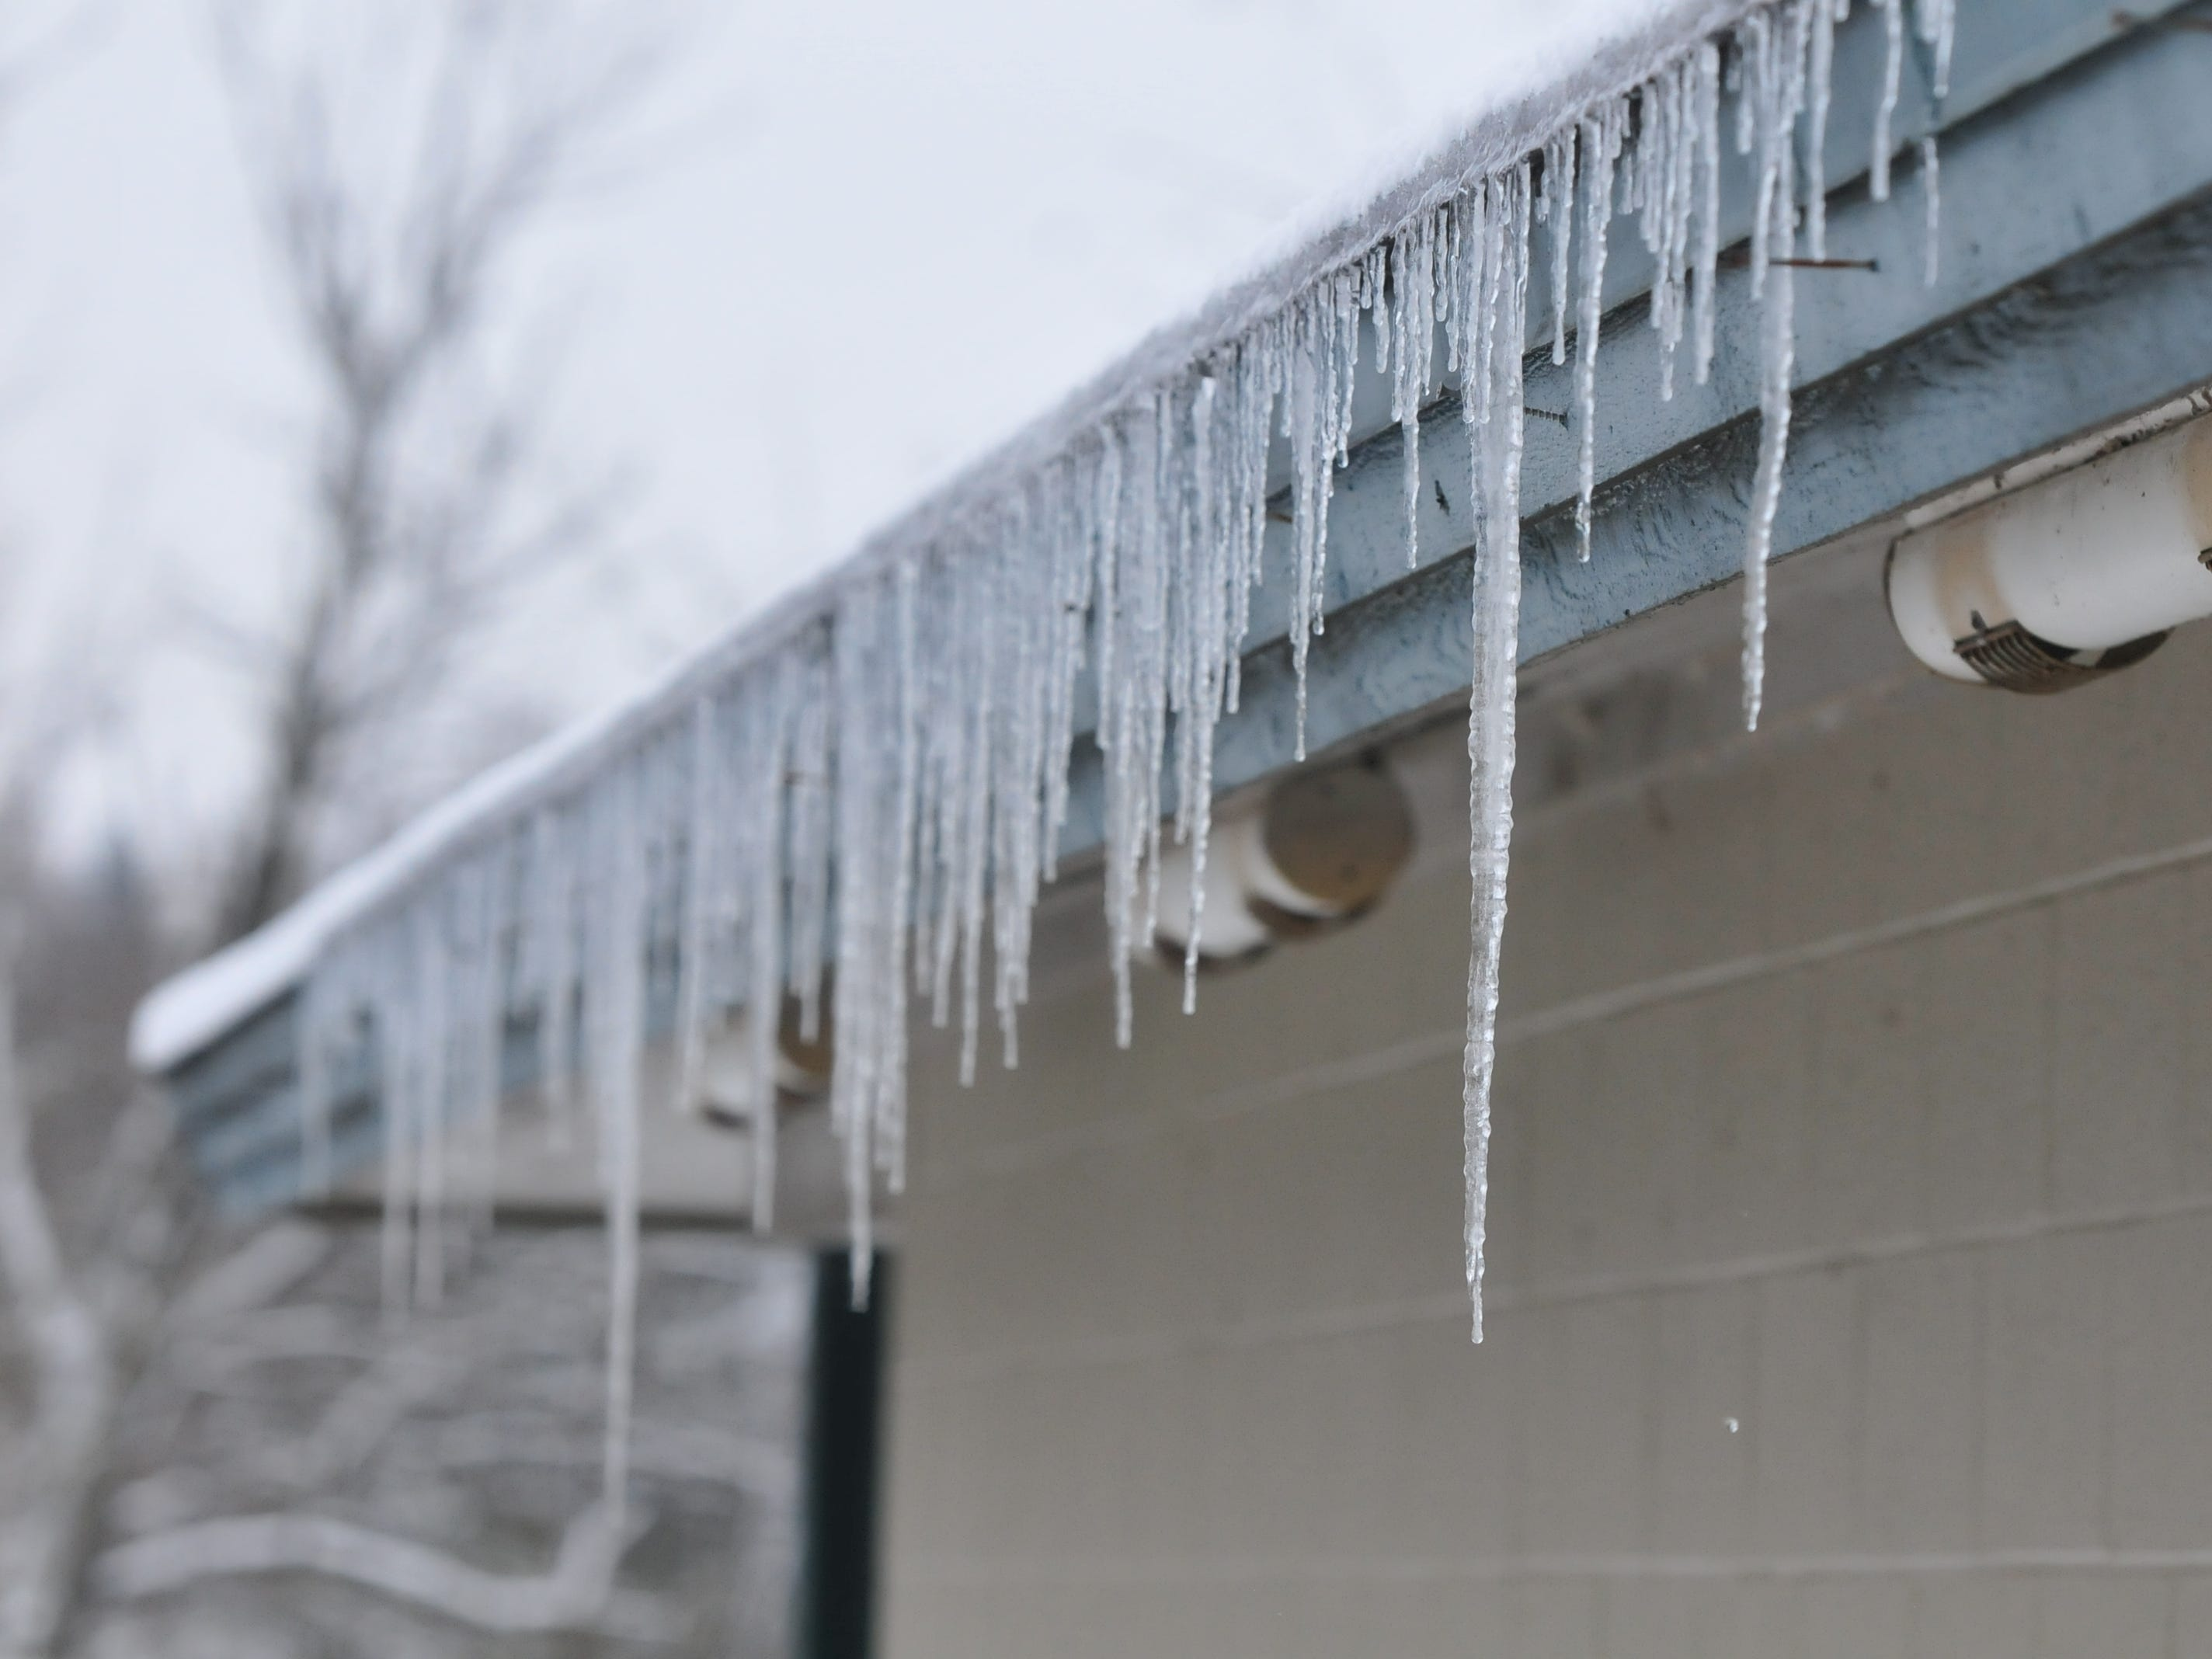 Icicles hung Friday from a building at Glen Miller Park.